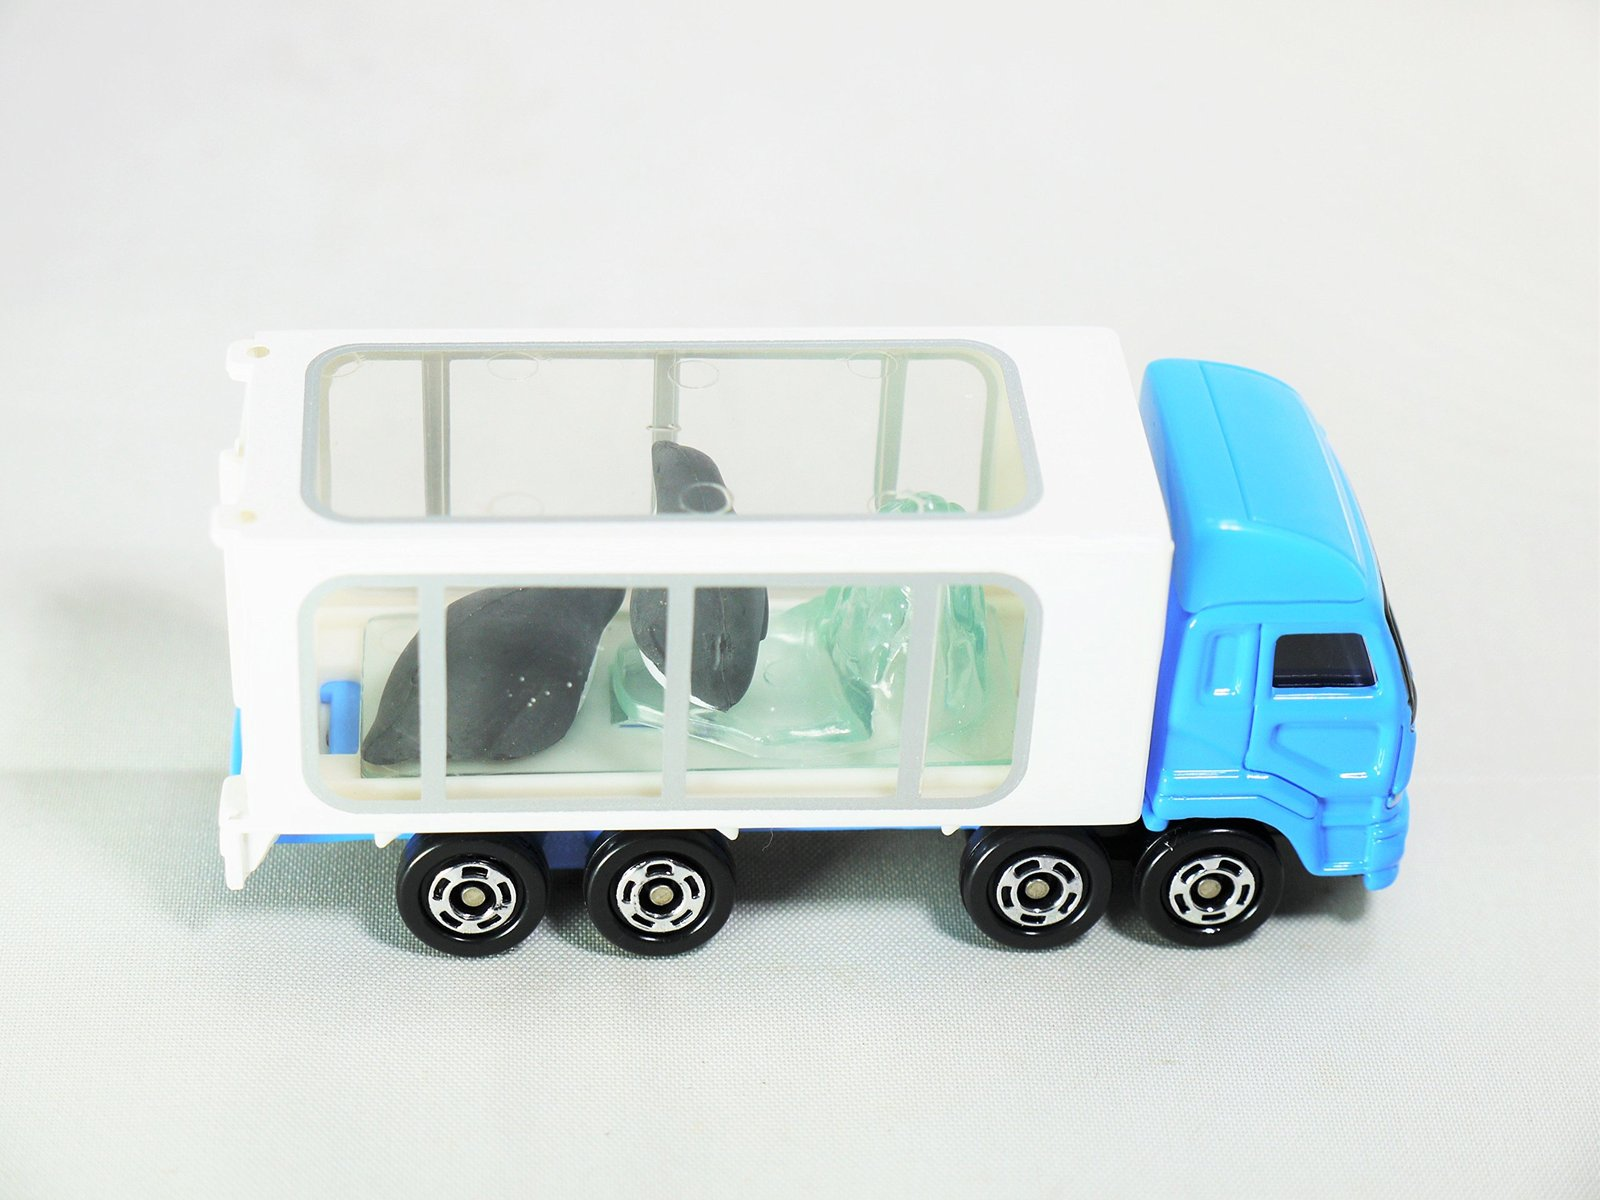 Takara Tomy Tomica Commercial Vehicle Typus And 50 Similar Items Diecast Truck No77 Hino Profia Original Animal Carrier Penguin 47